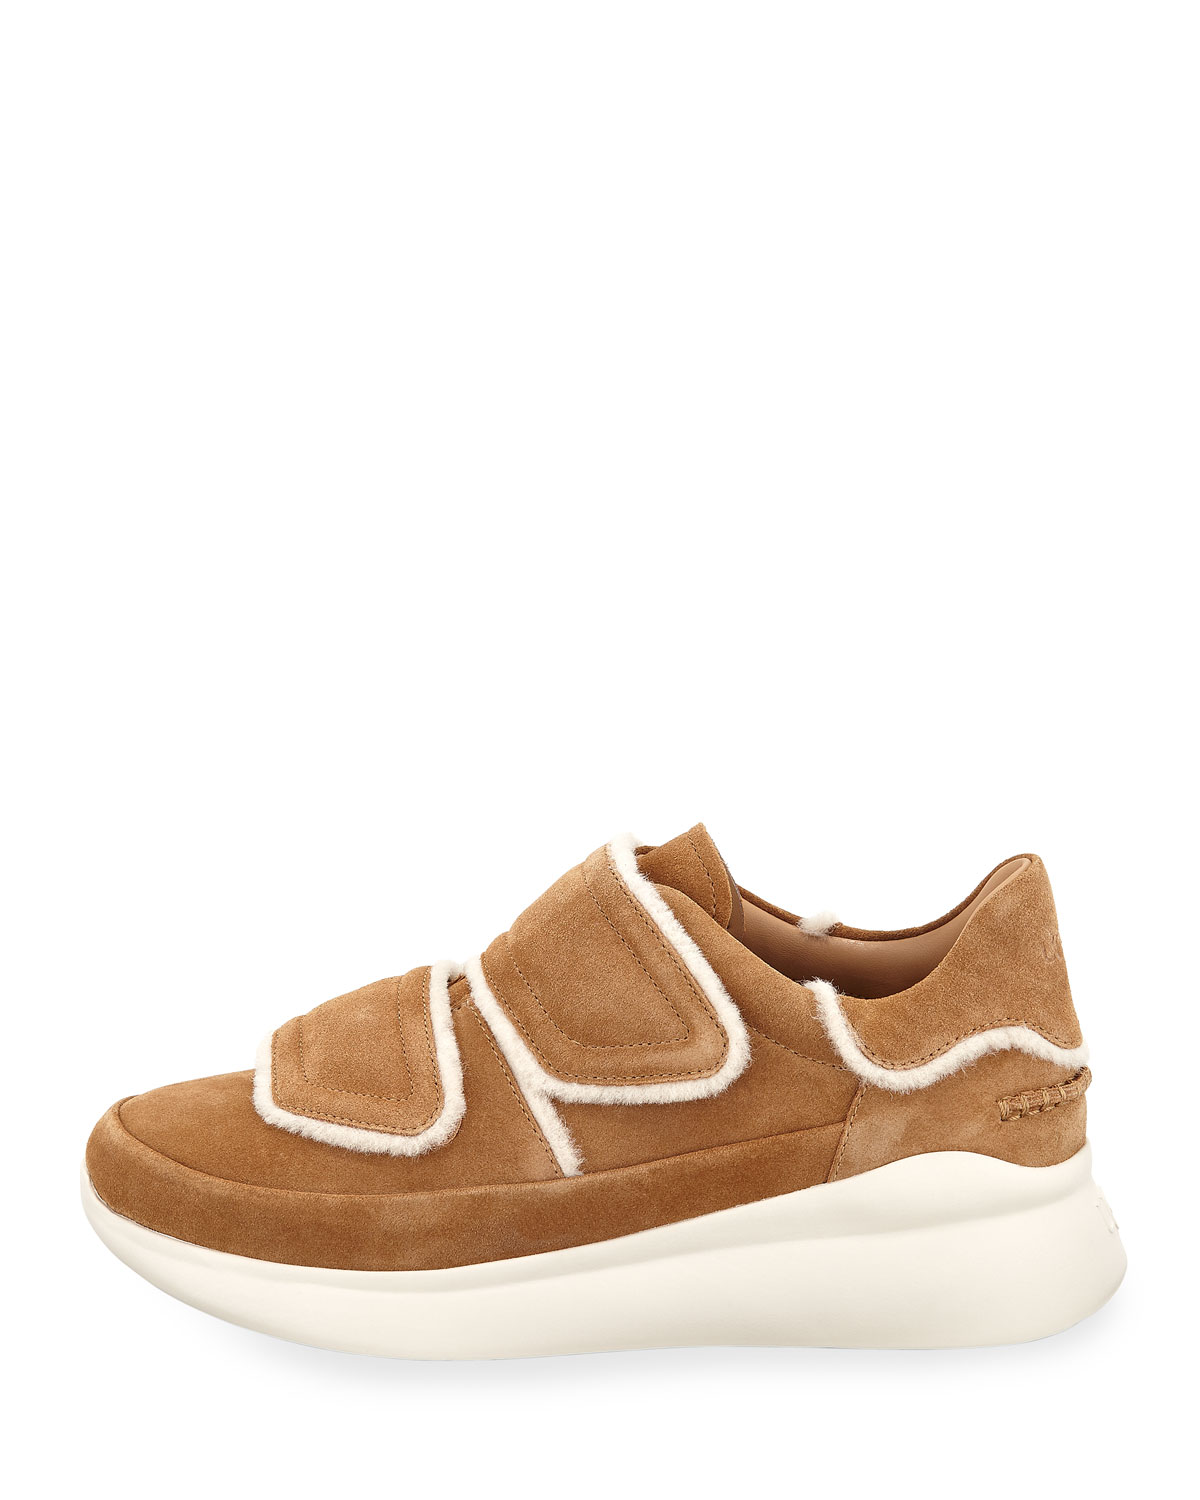 062c4e83194 Ashby Spill Seam Sneakers